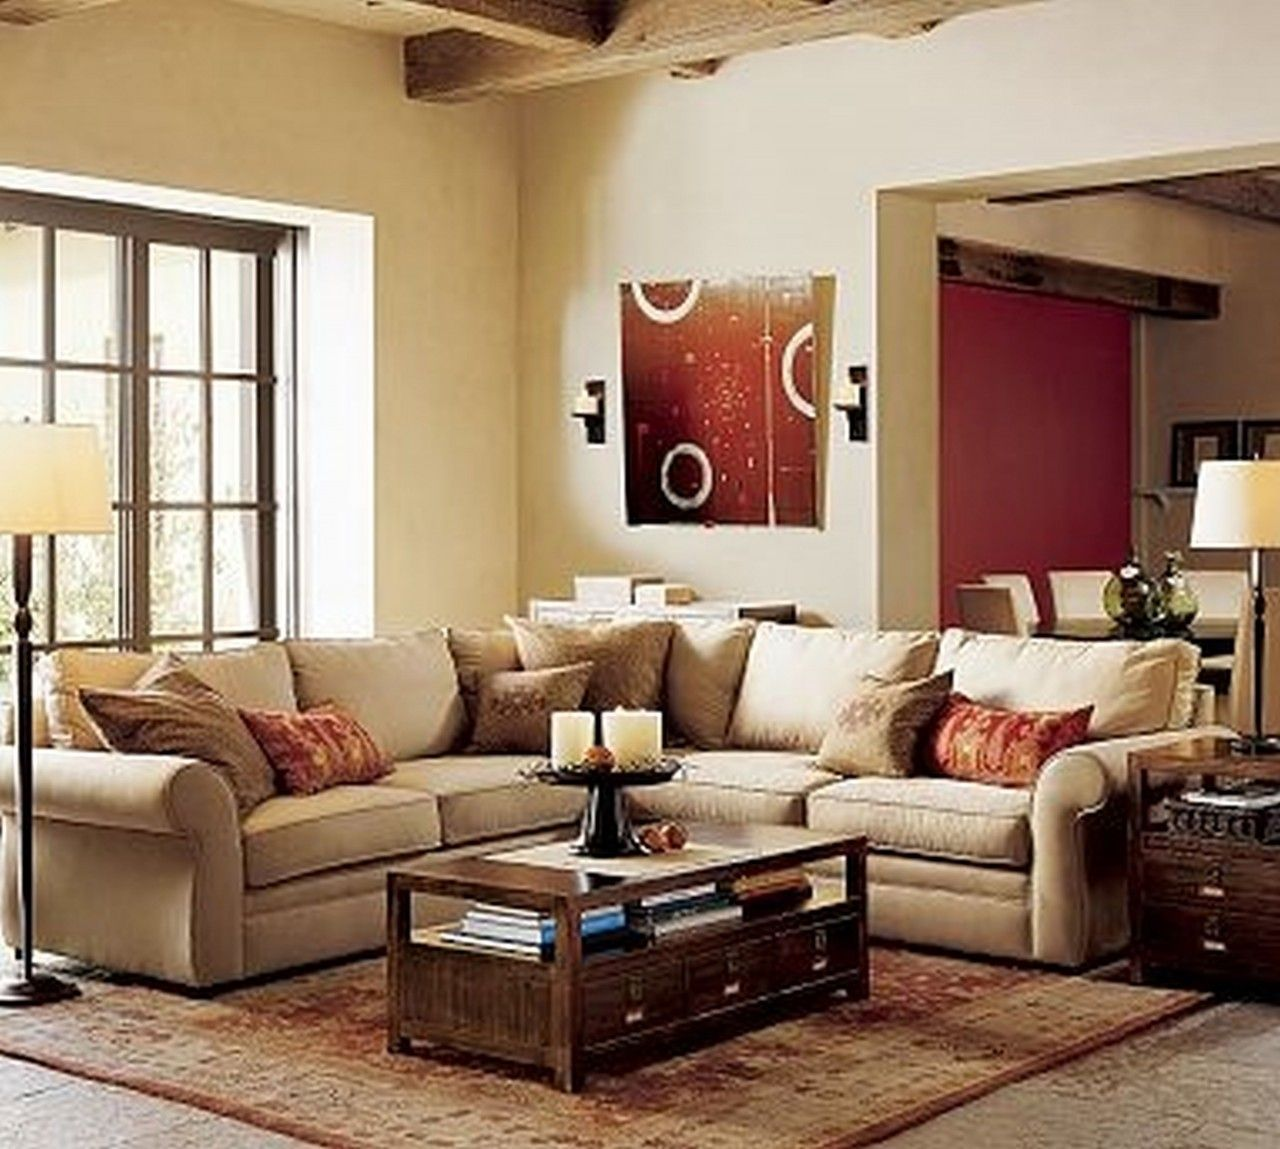 Astounding home decorating ideas for cheap decor fetching modern